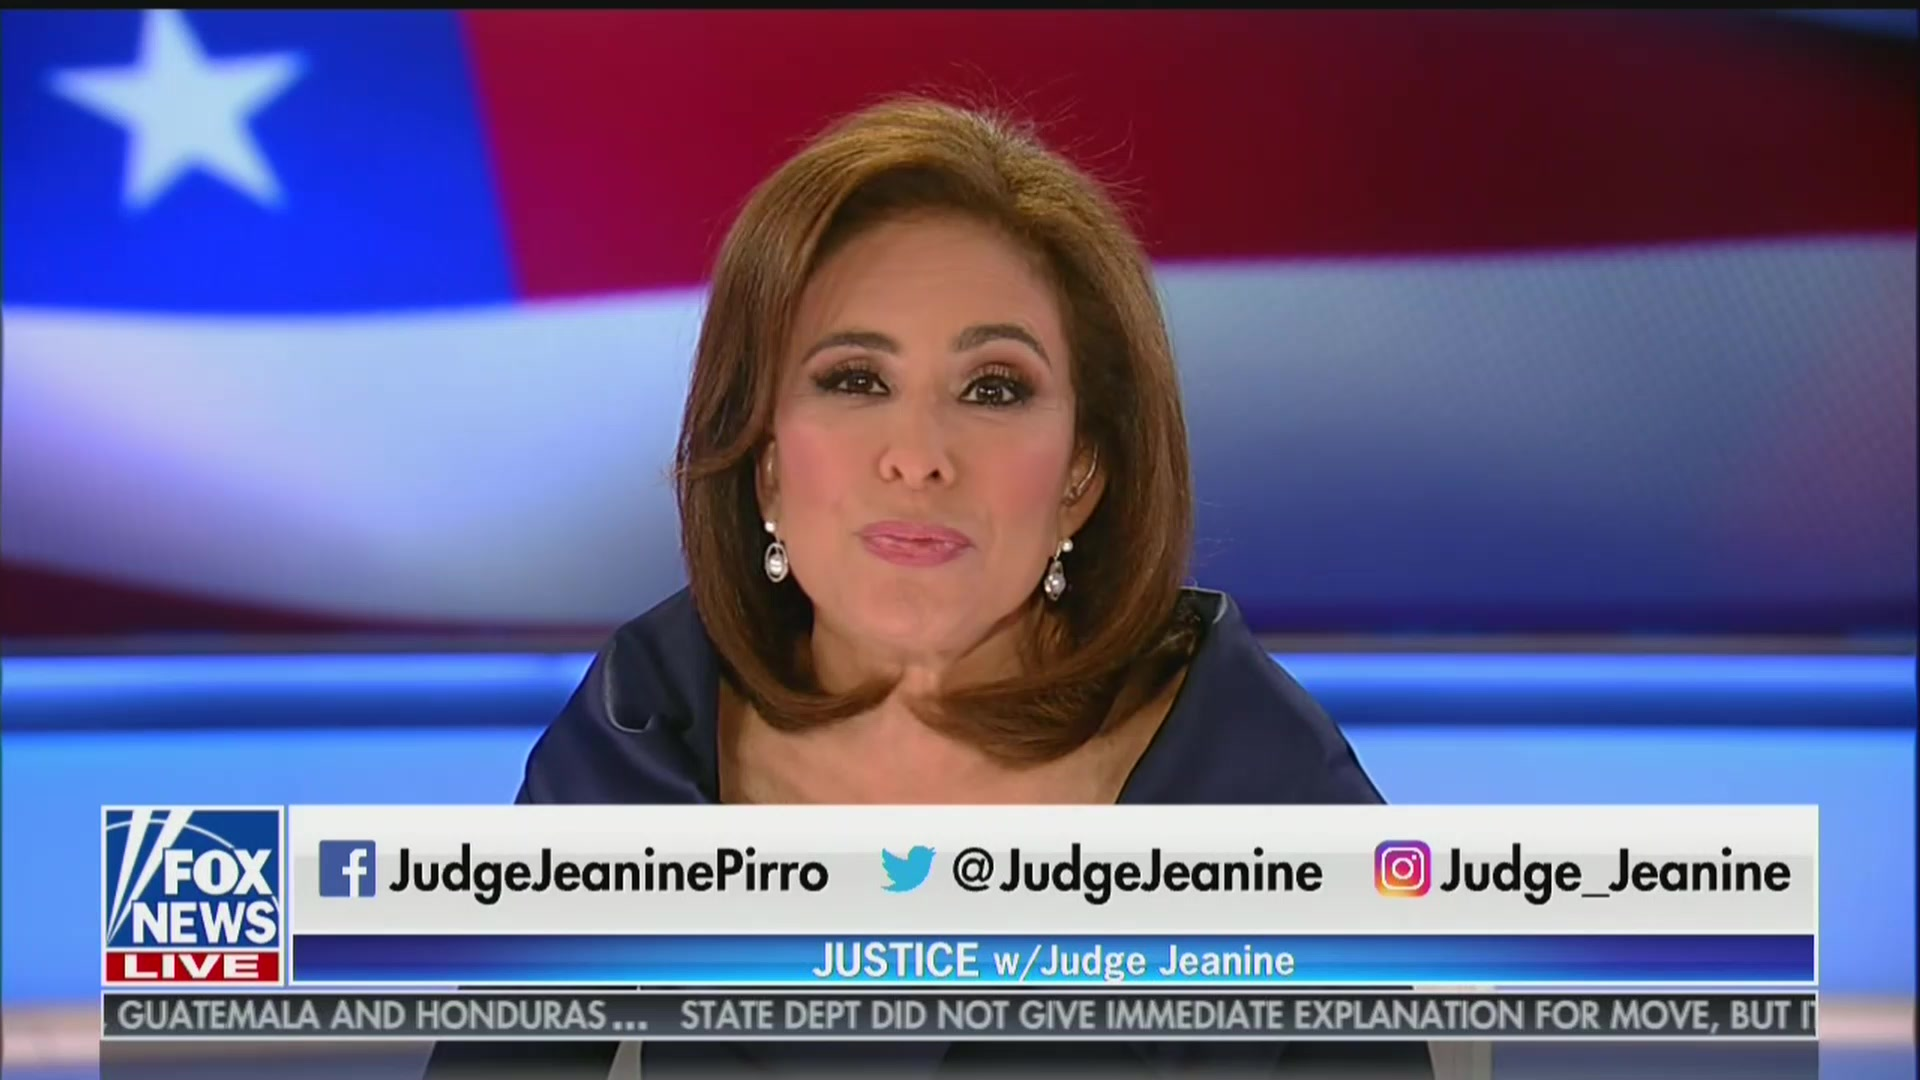 No Apology: Jeanine Pirro Makes Fox News Return, Doesn't Address Islamophobic Controversy